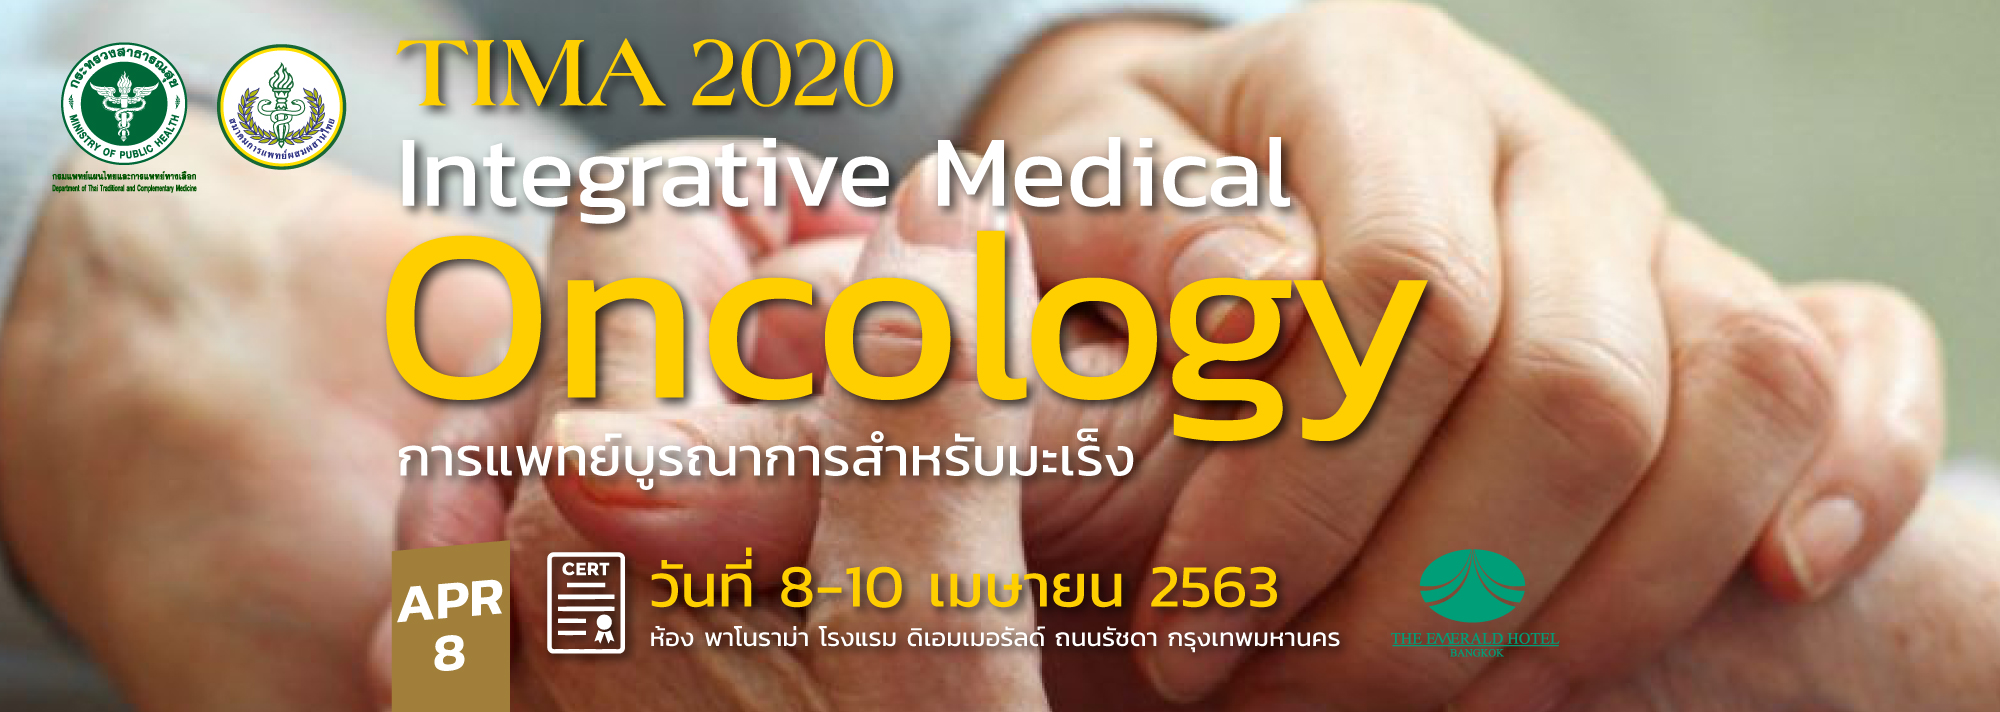 Integrative Medical Oncology